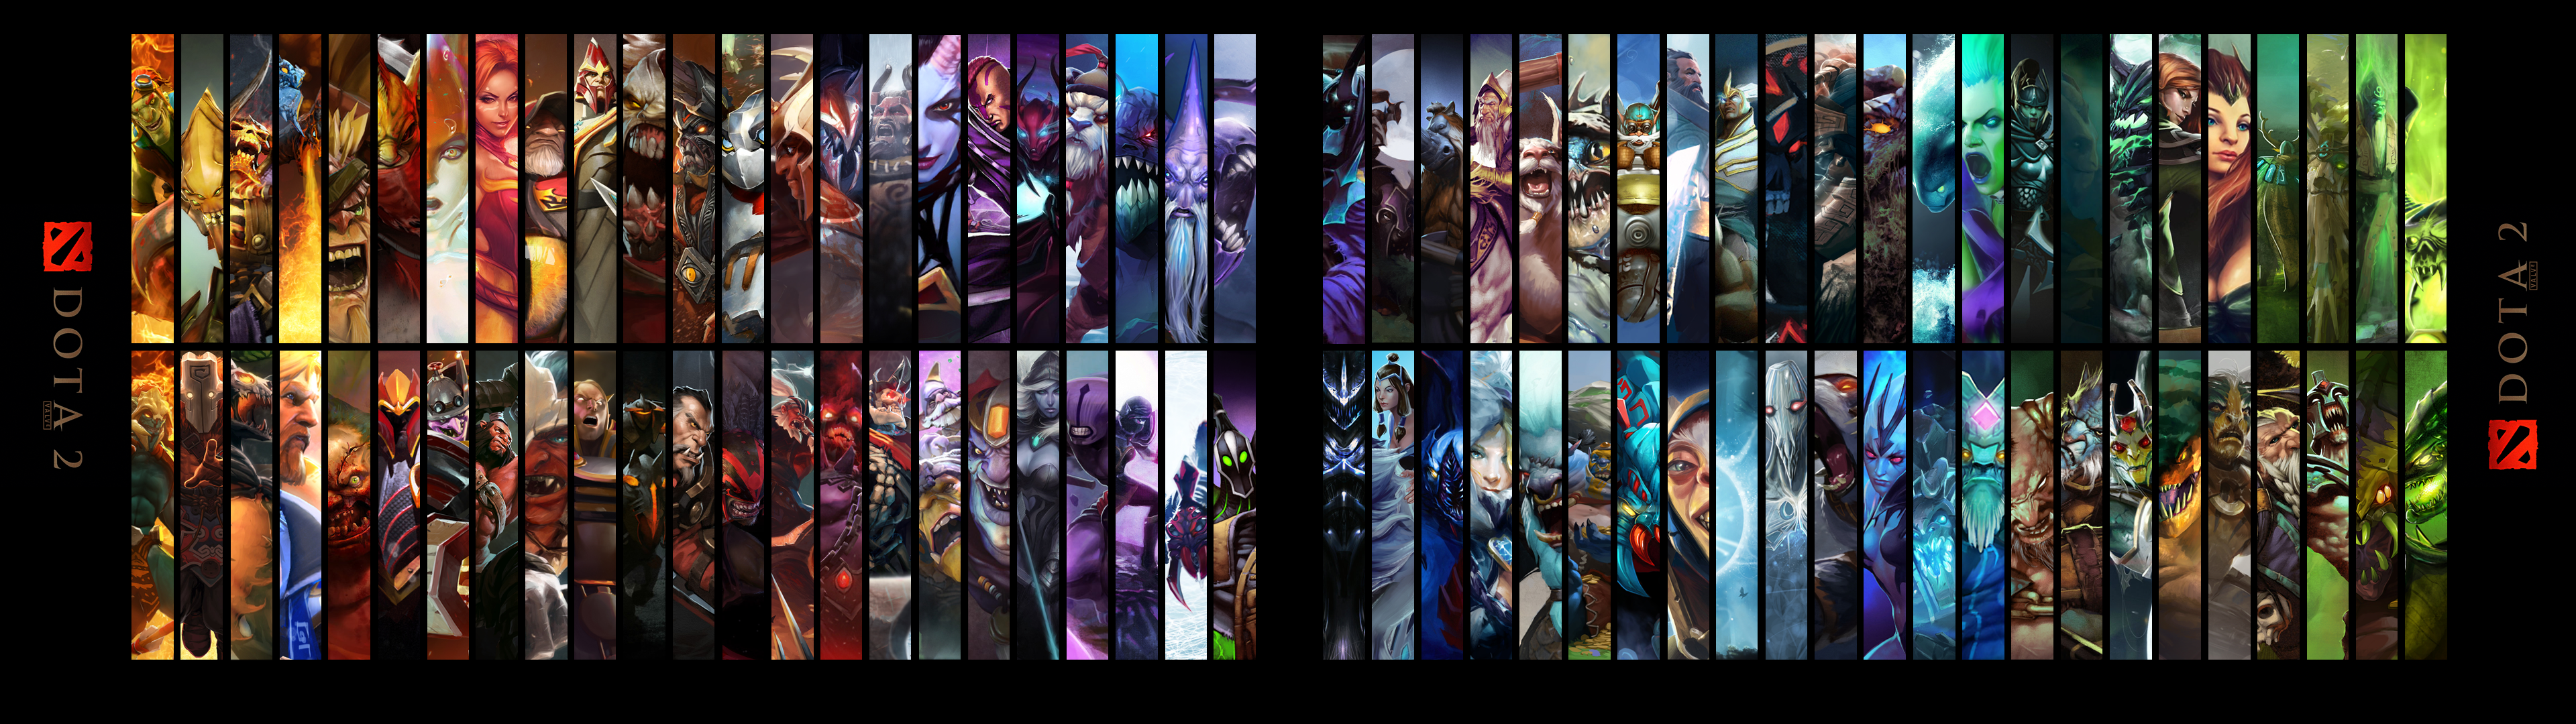 Dota2 Hero Wallpaper V2 3840x1080 Dual Monitors By Imkb